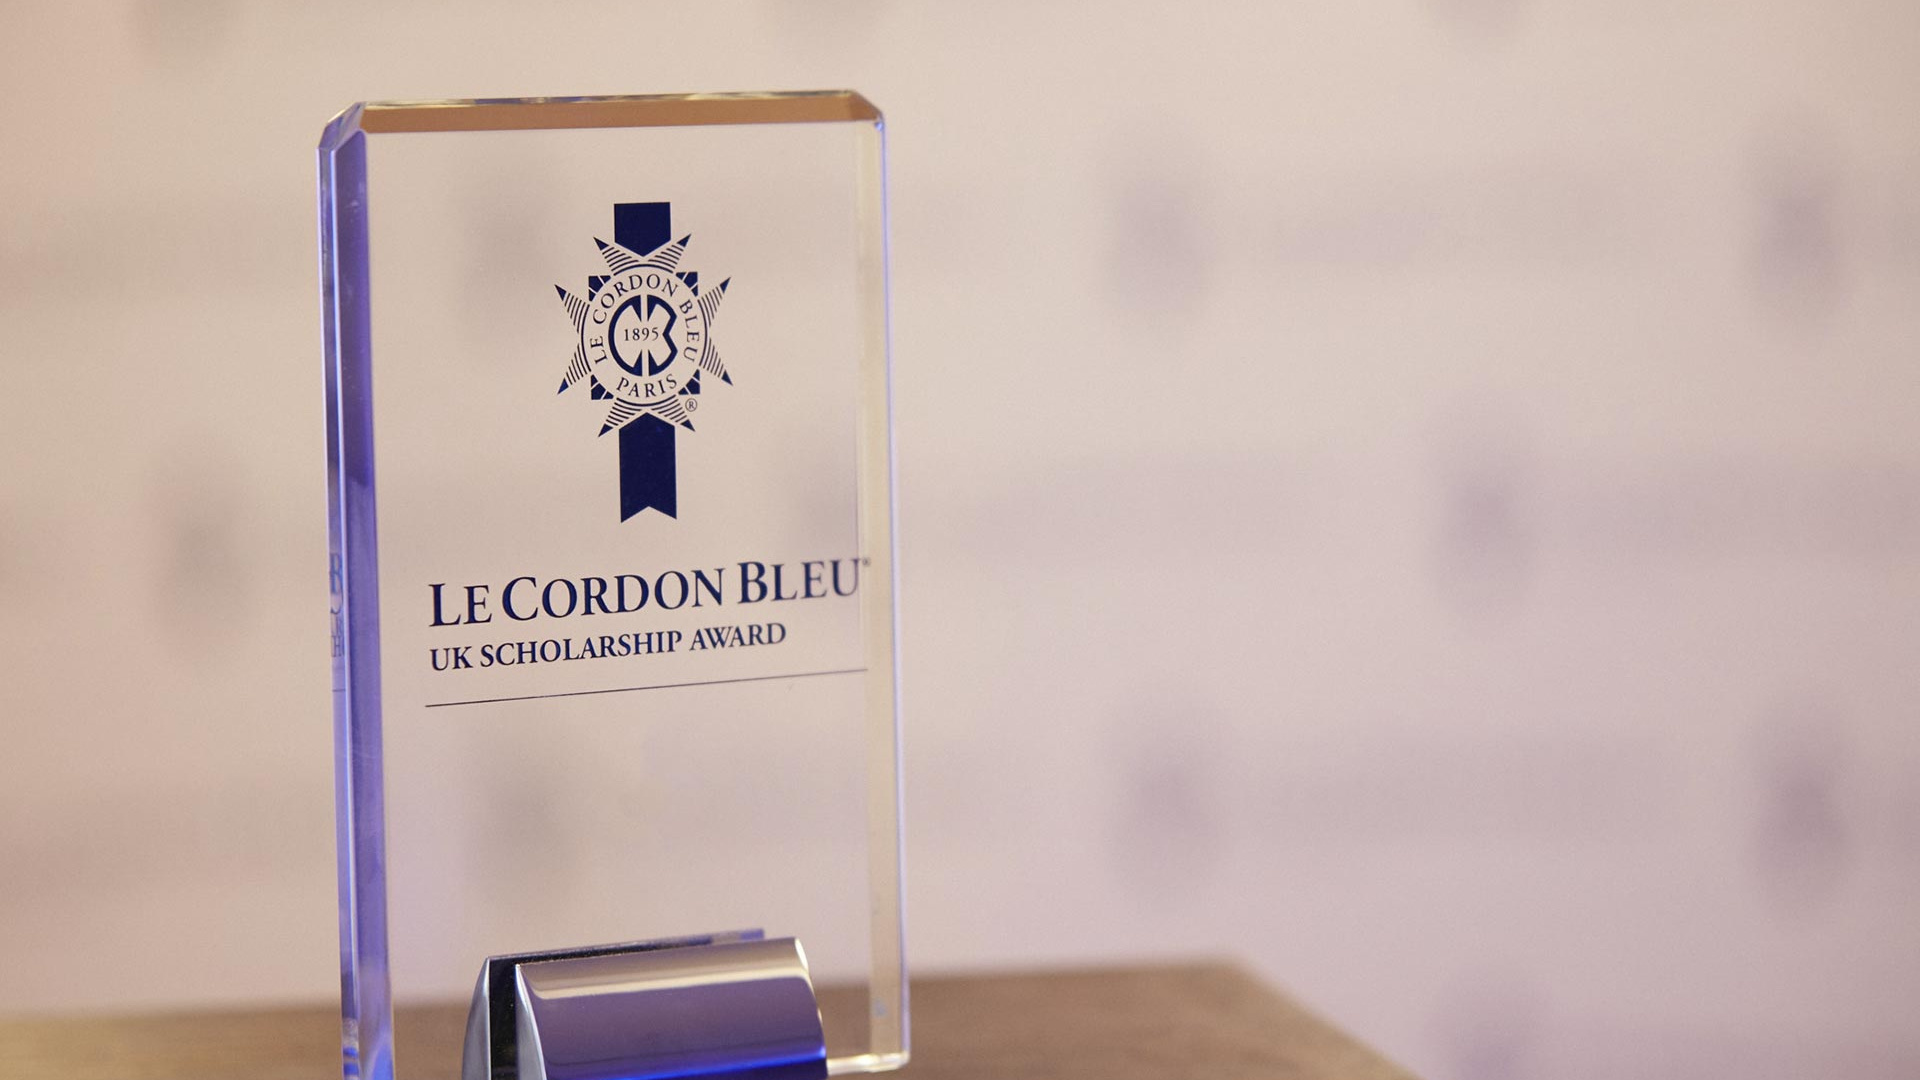 Le Cordon Bleu's UK Scholarship Award